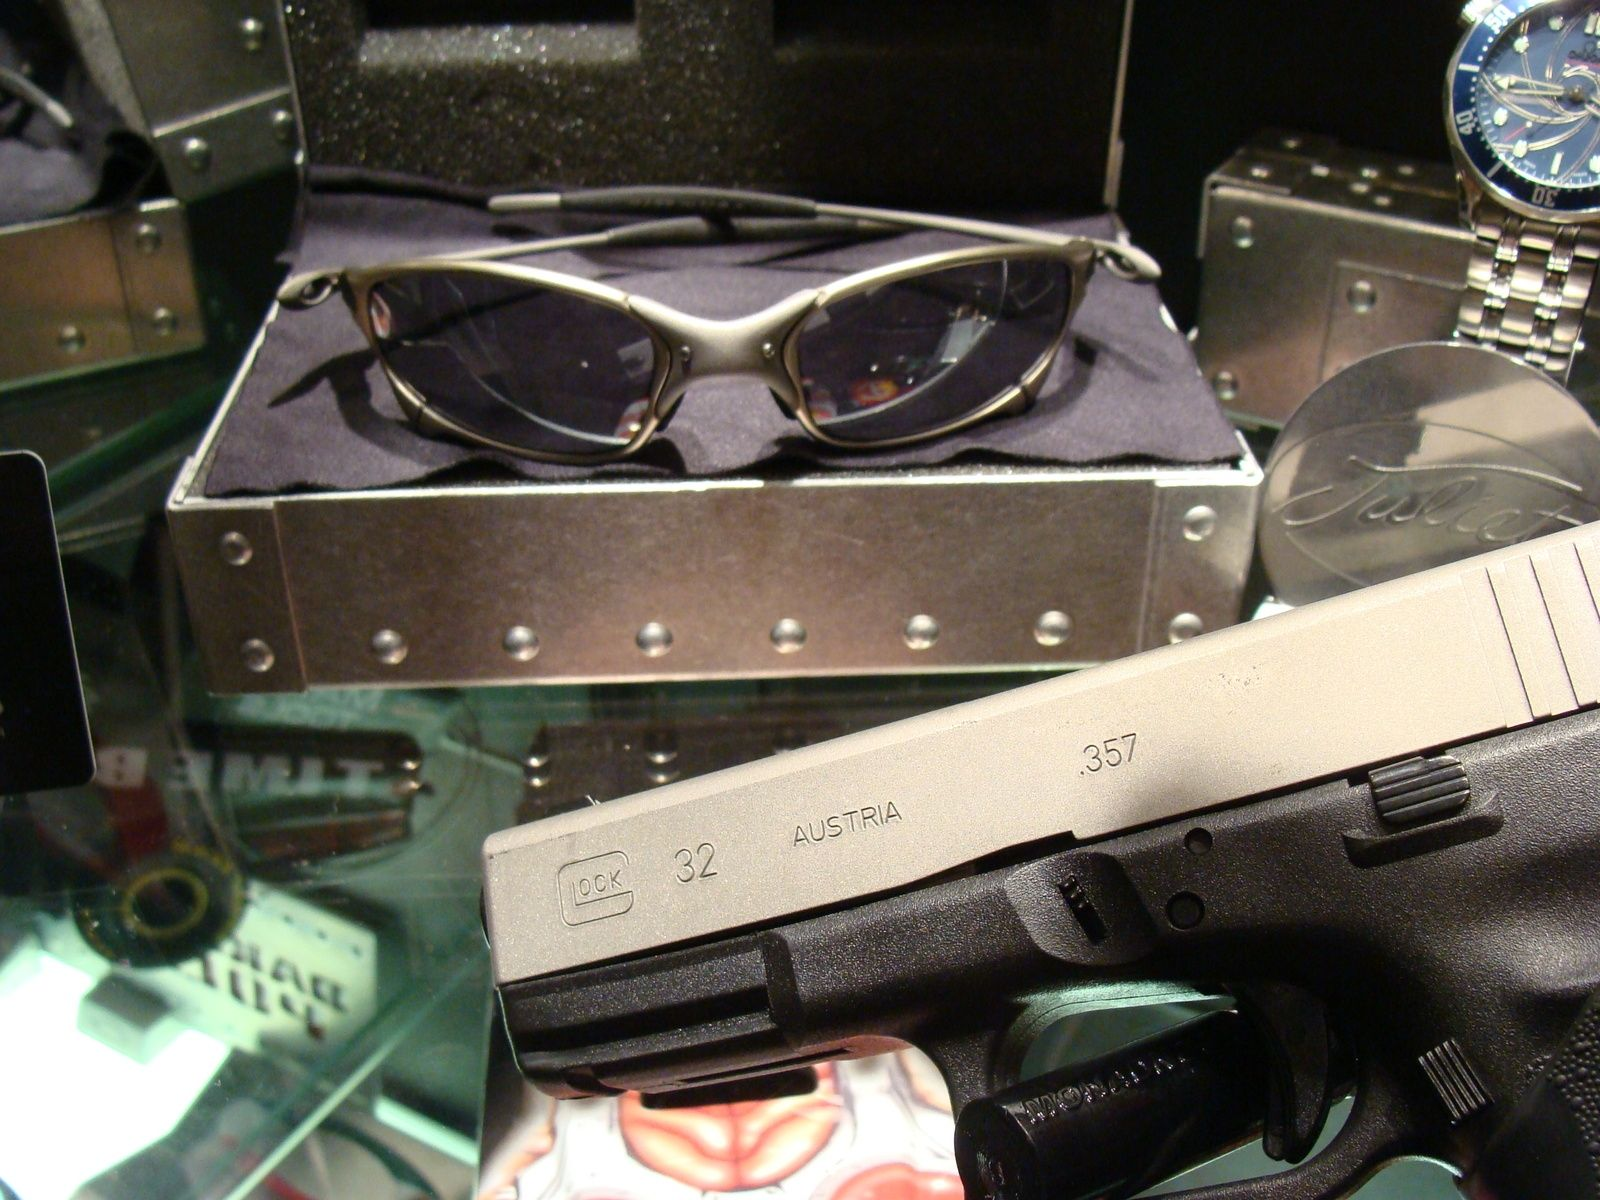 GLOCK Ti-02, And Other Ti-02 Collection  (XMAN) - DSC04867.JPG